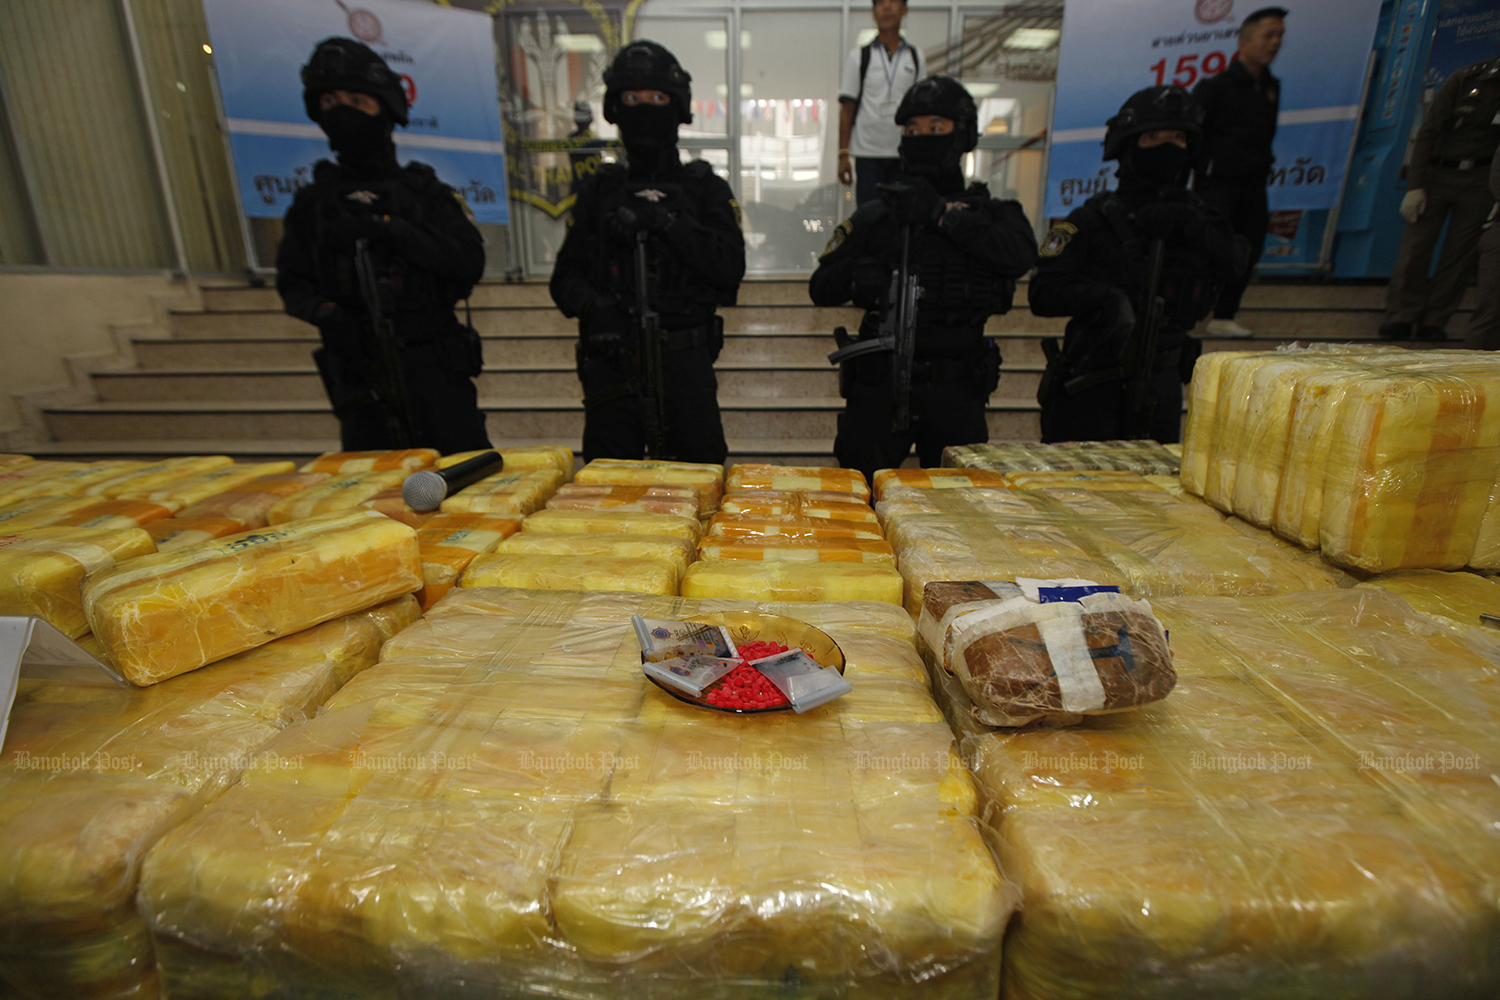 Three million methamphetamine pills, as well as 40 kilomgrammes of crystal meth, have been seized in Chiang Saen district of Chiang Rai province. (Bangkok Post file photo)